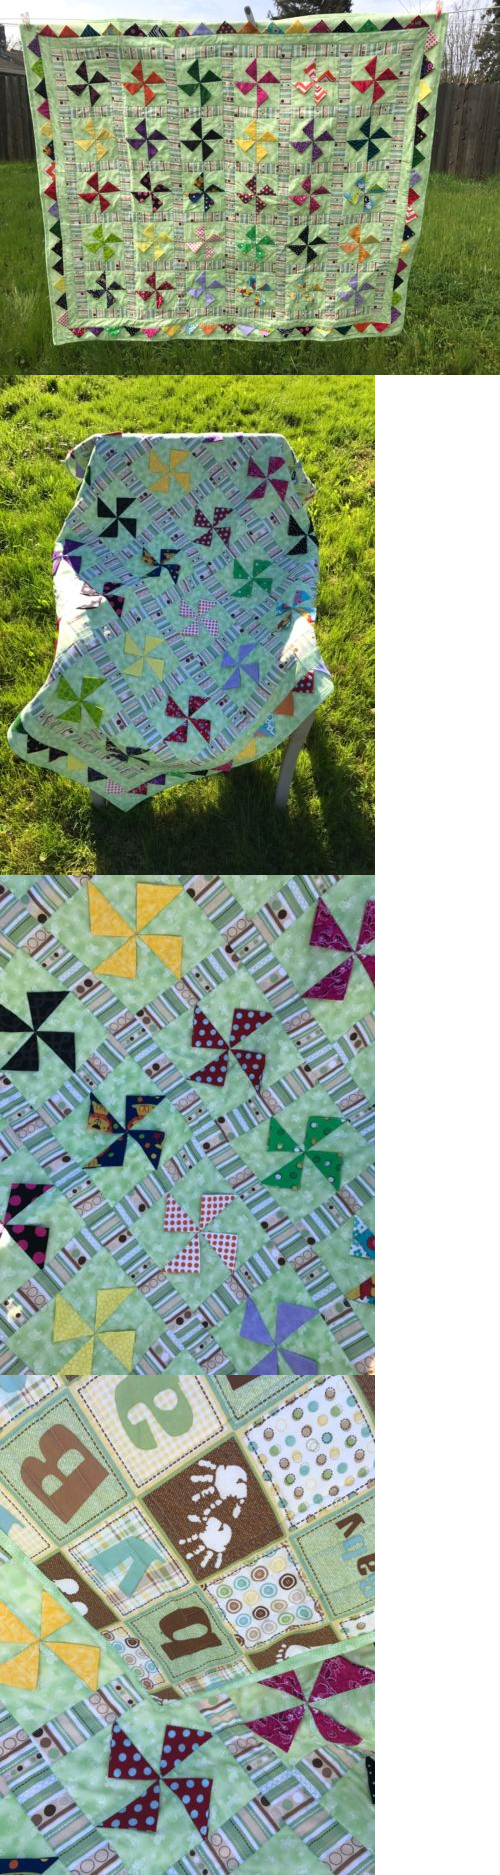 Crib size quilts for sale - Quilts 116649 New Green Baby Handcrafted Baby Lap Crib Quilt 46 X 52